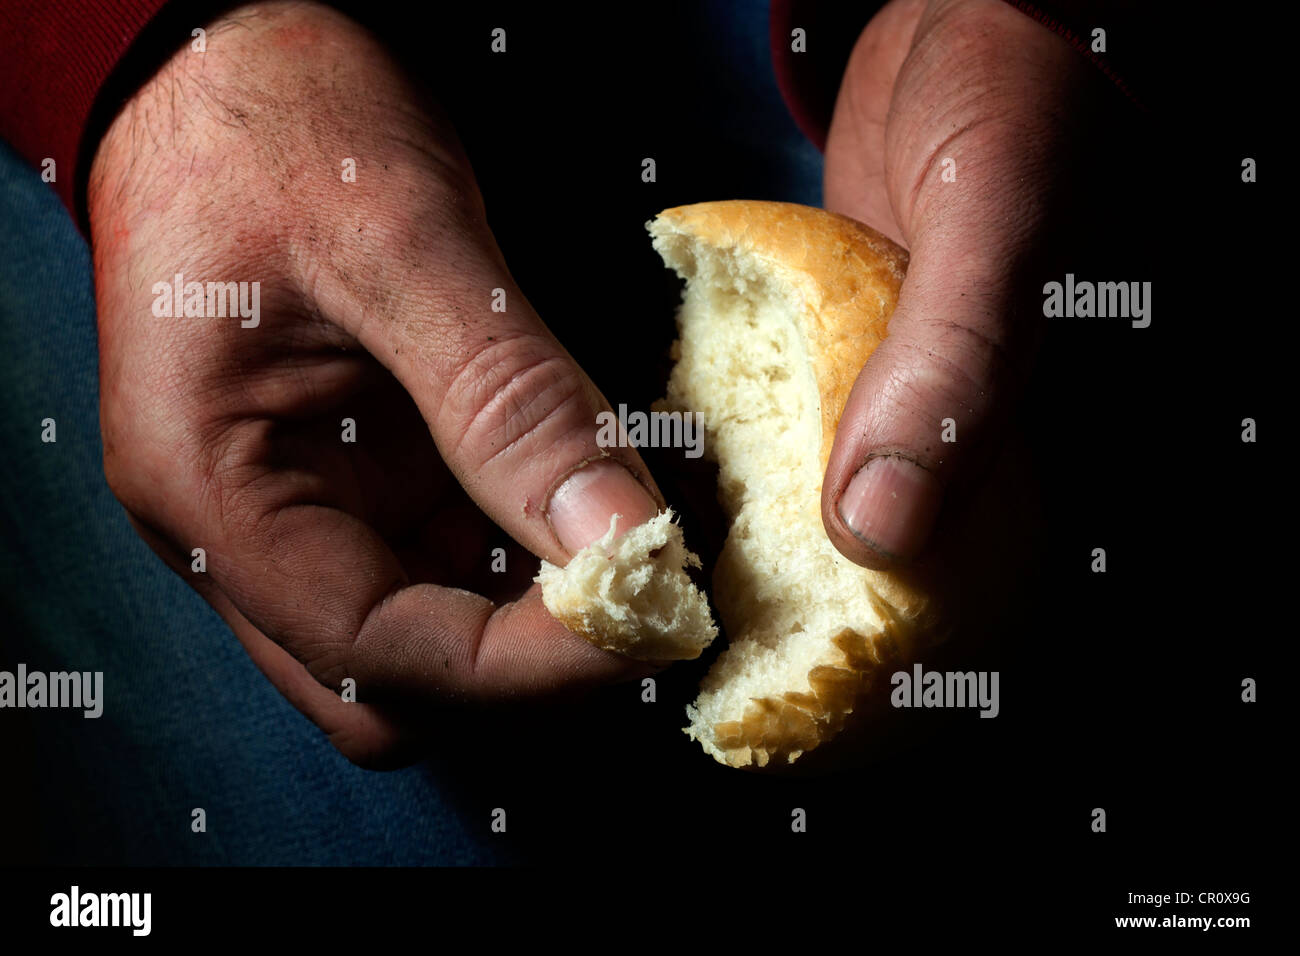 Poverty, hunger and misery last bread in hand starvation concept - Stock Image